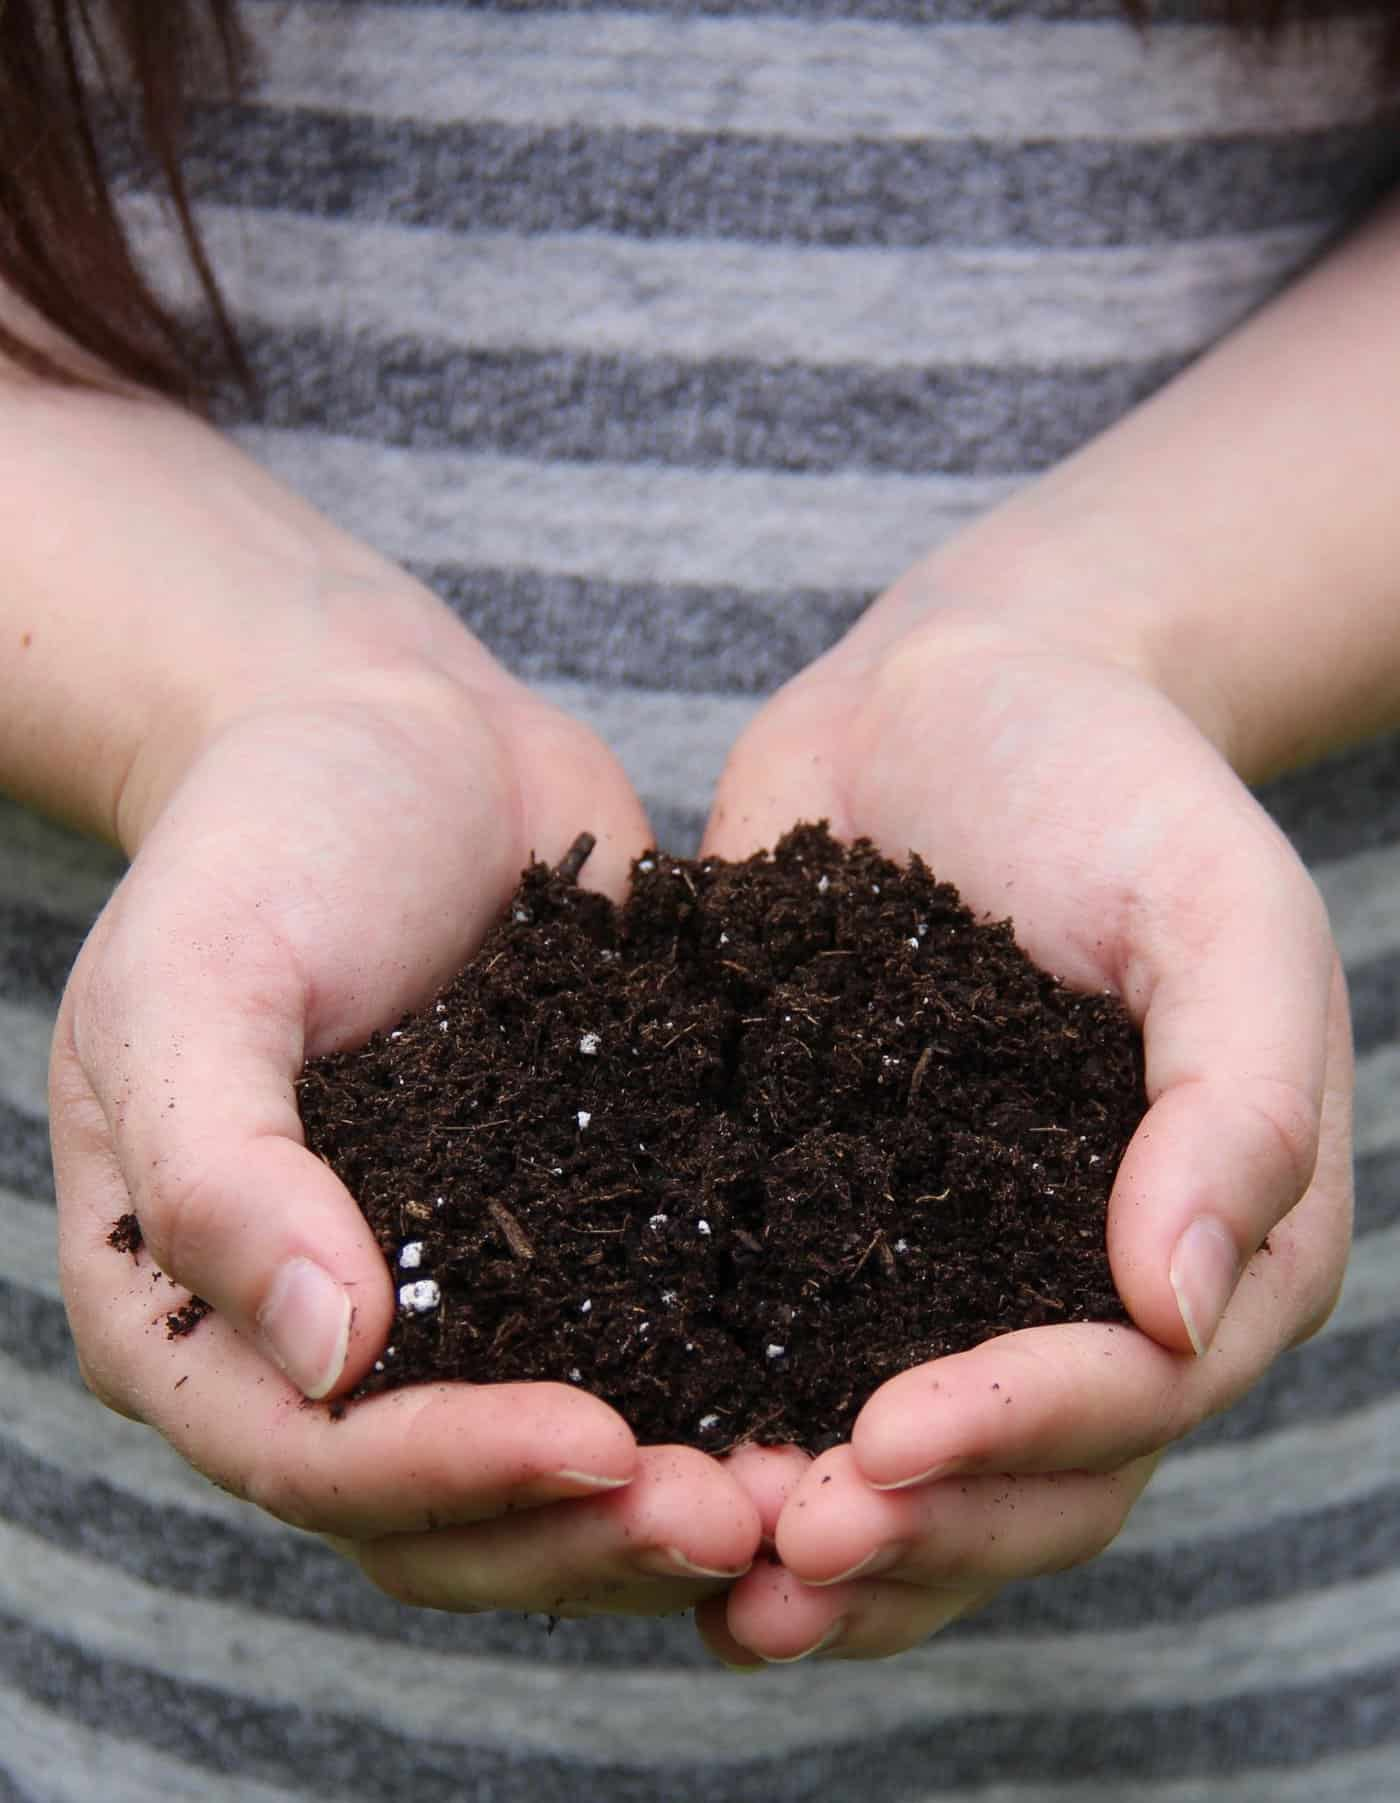 Types of Soil for Organic Gardening Explained | HomefortheHarvest #SoilTypes #TypesofSoil #OrganicGardening #Gardening #HealthySoil #LearntoGarden